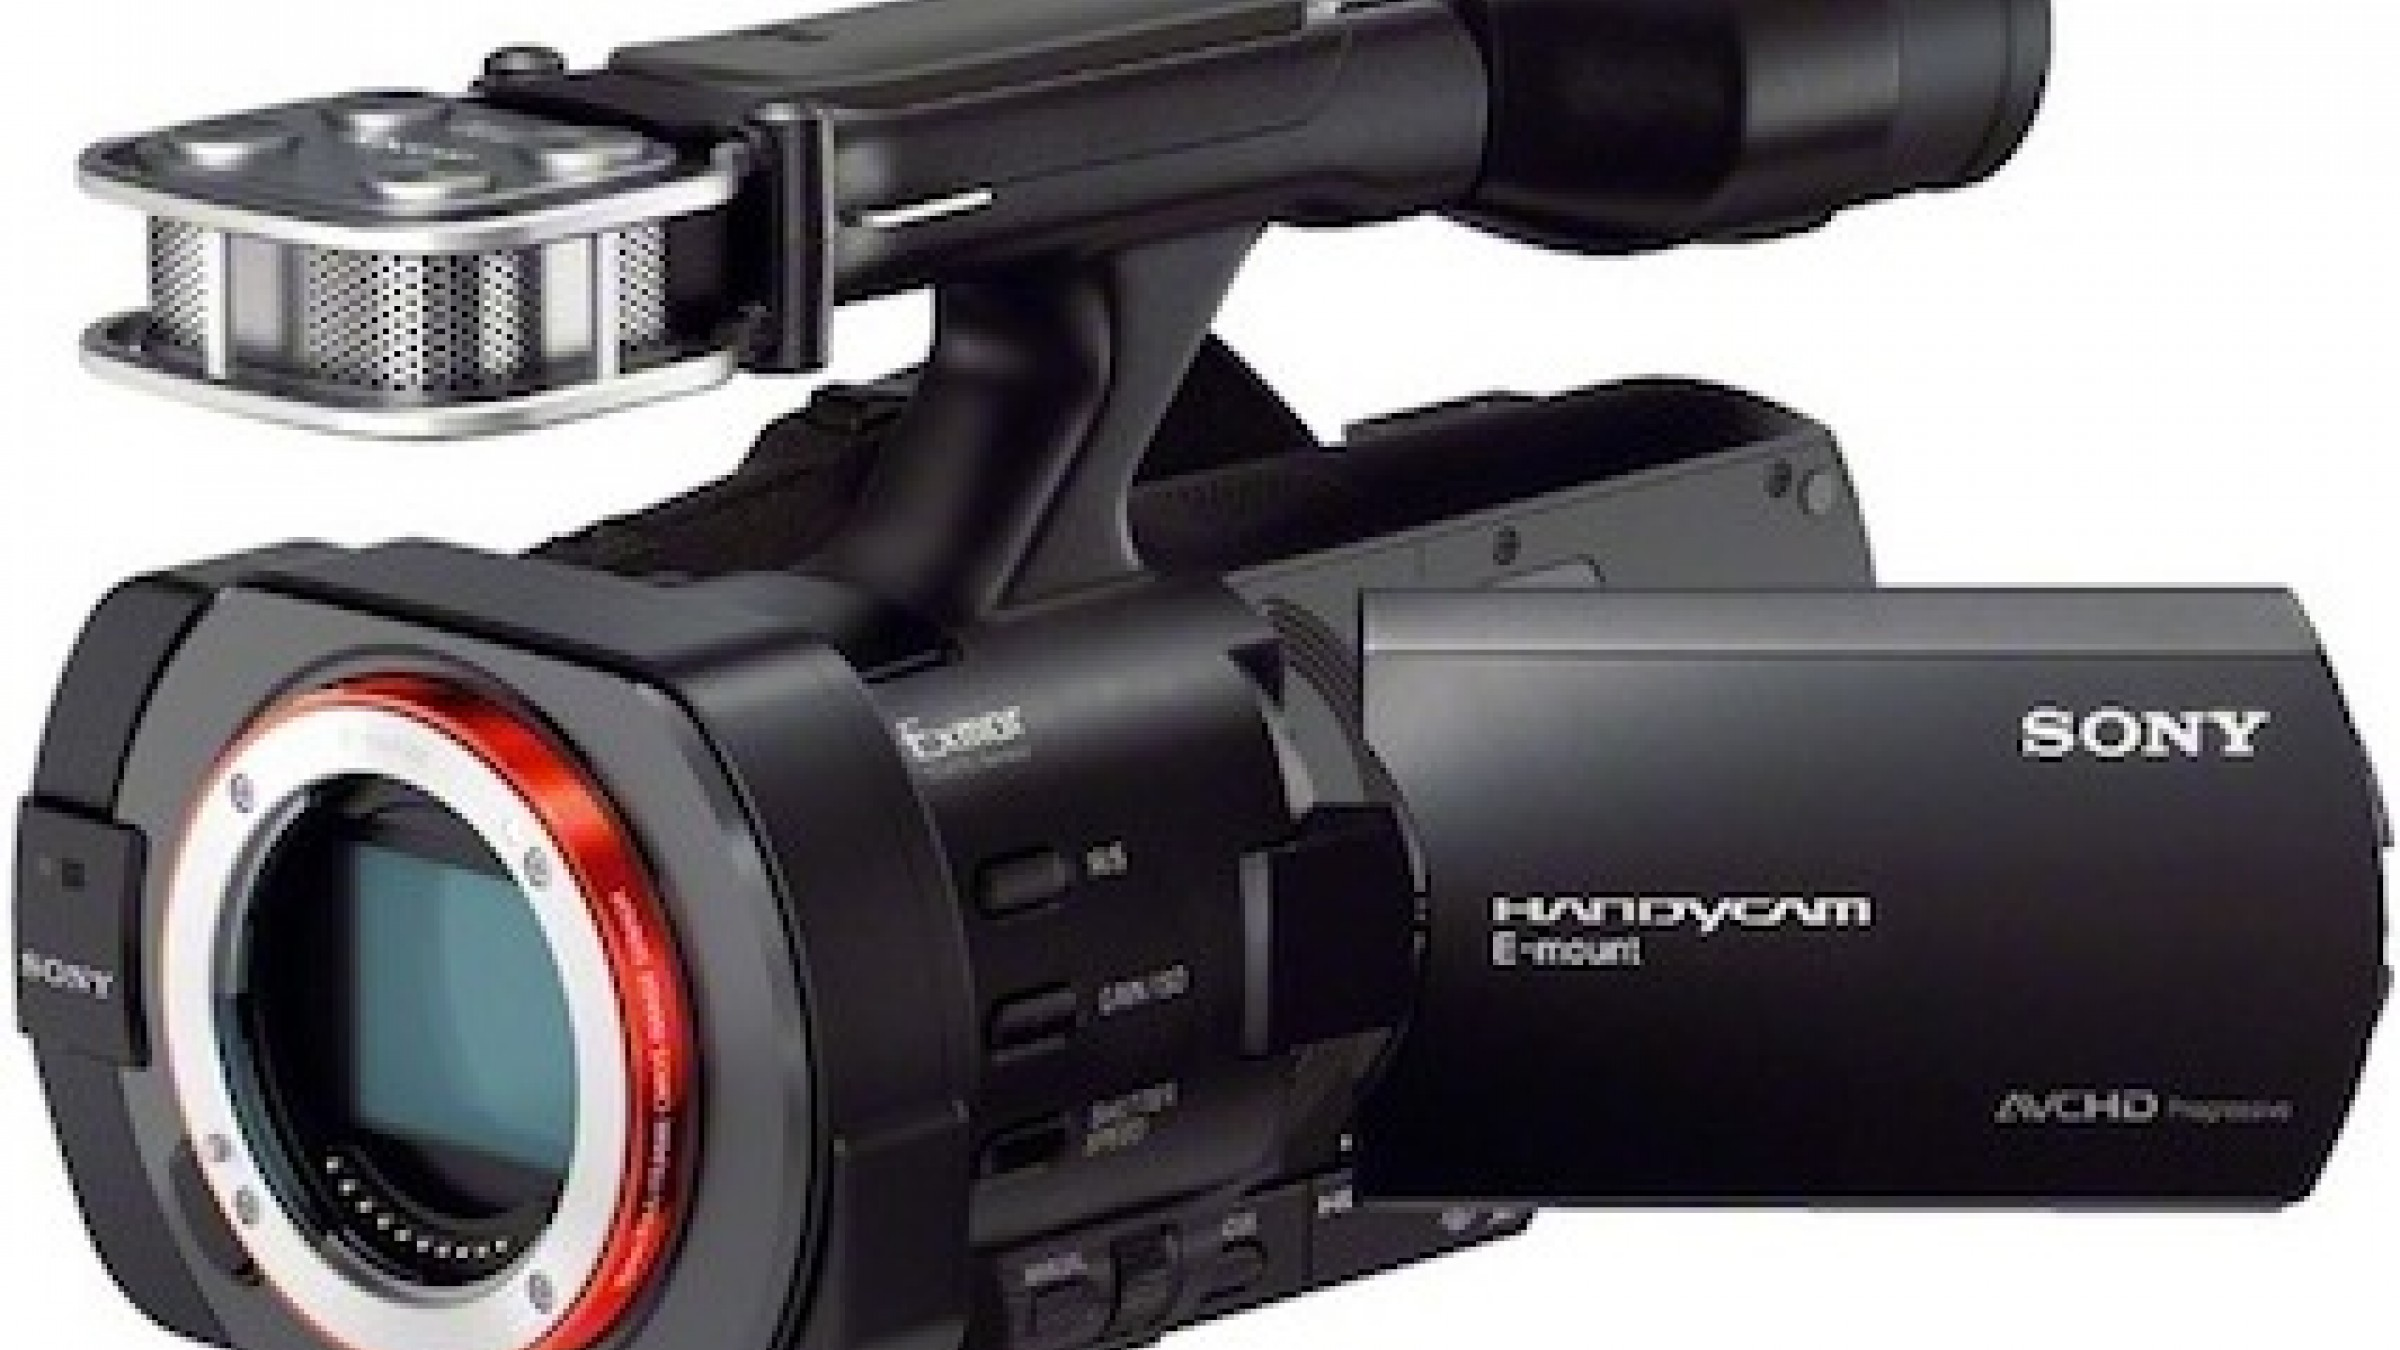 Sony NEX-VG900: a Real Video Camera, or a Full-Frame DSLR in Disguise?